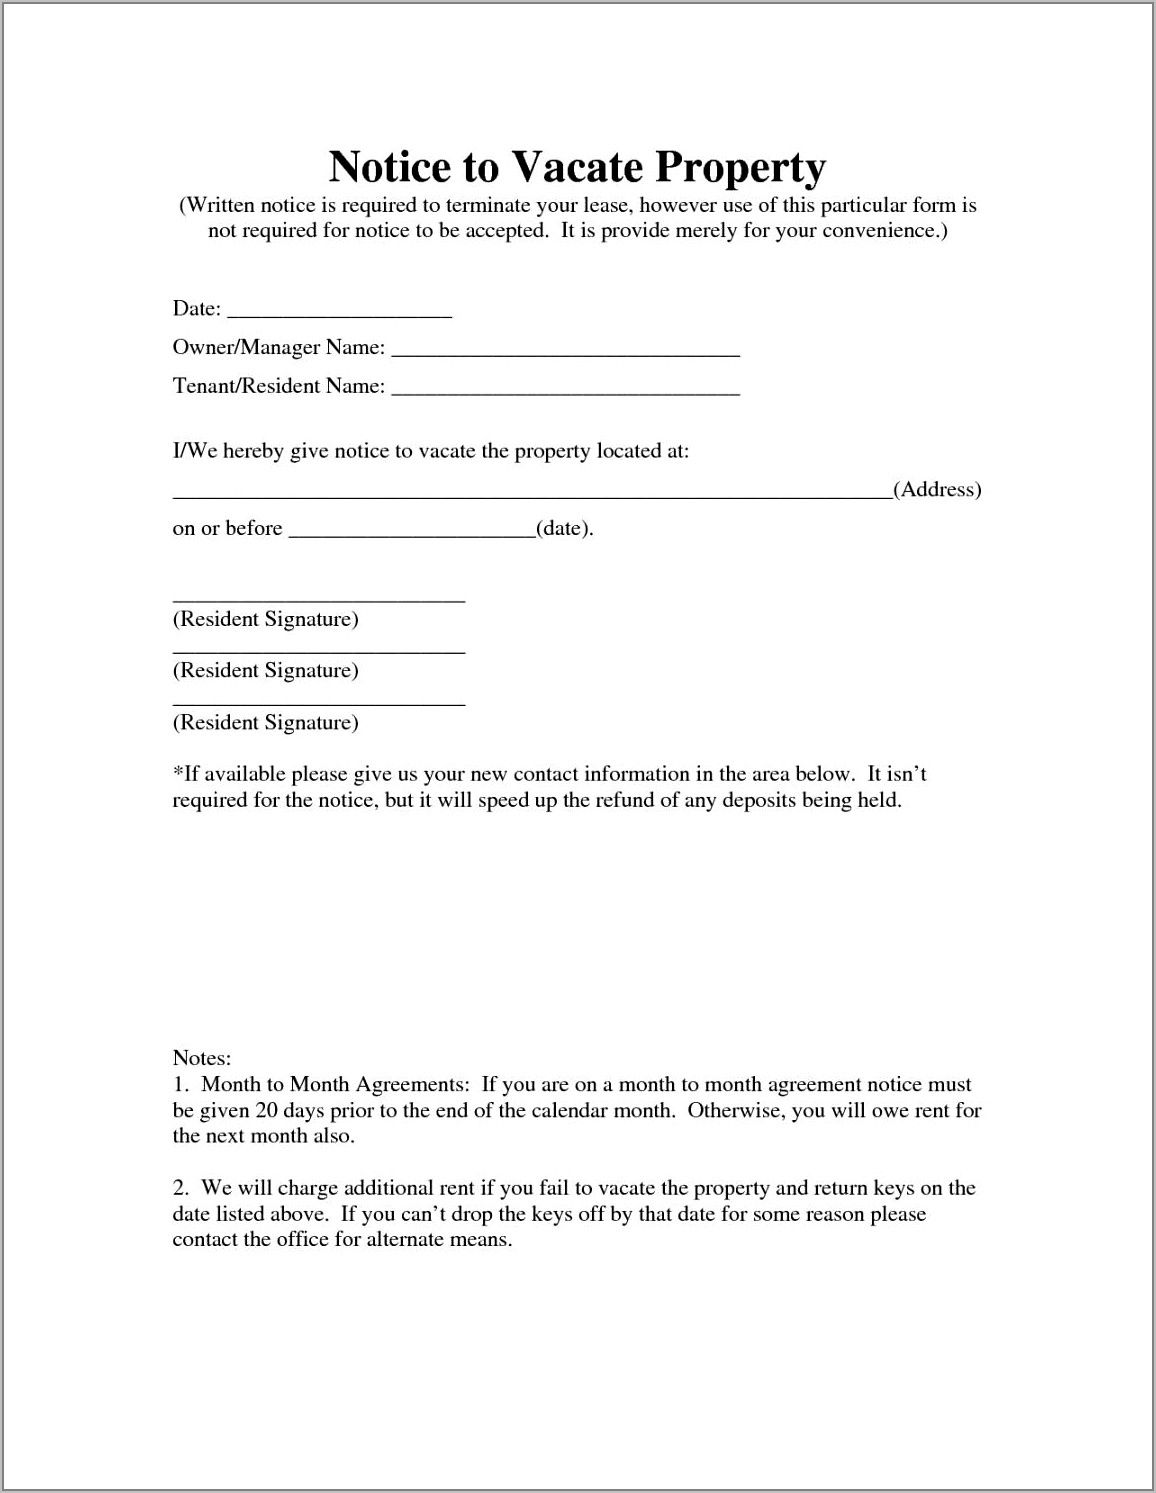 Letter Template For Notice To Vacate